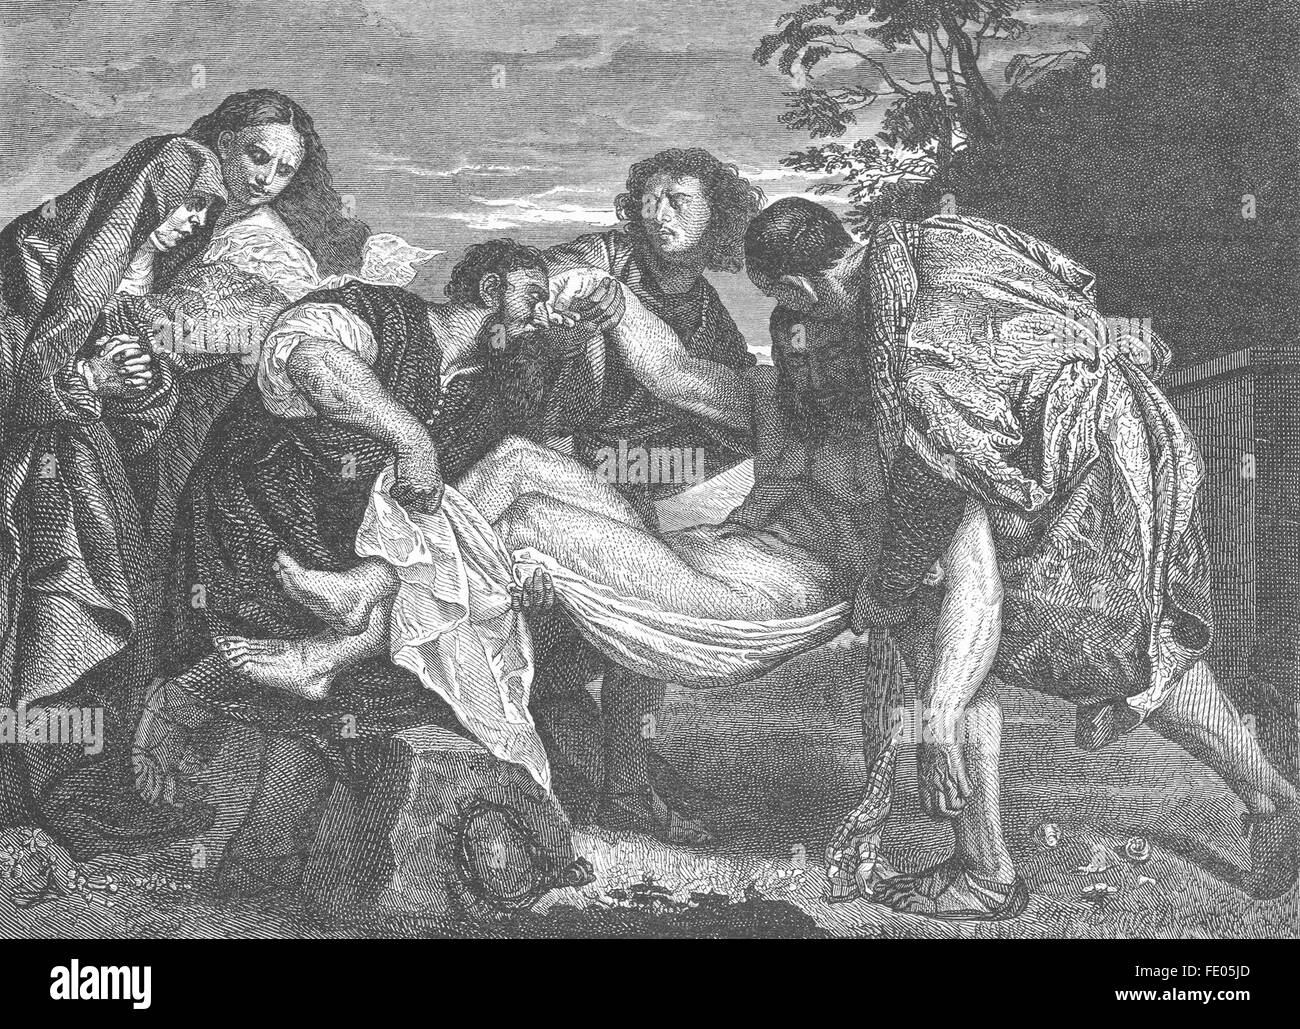 RELIGIOUS: The Entombment-Titian, antique print 1880 - Stock Image